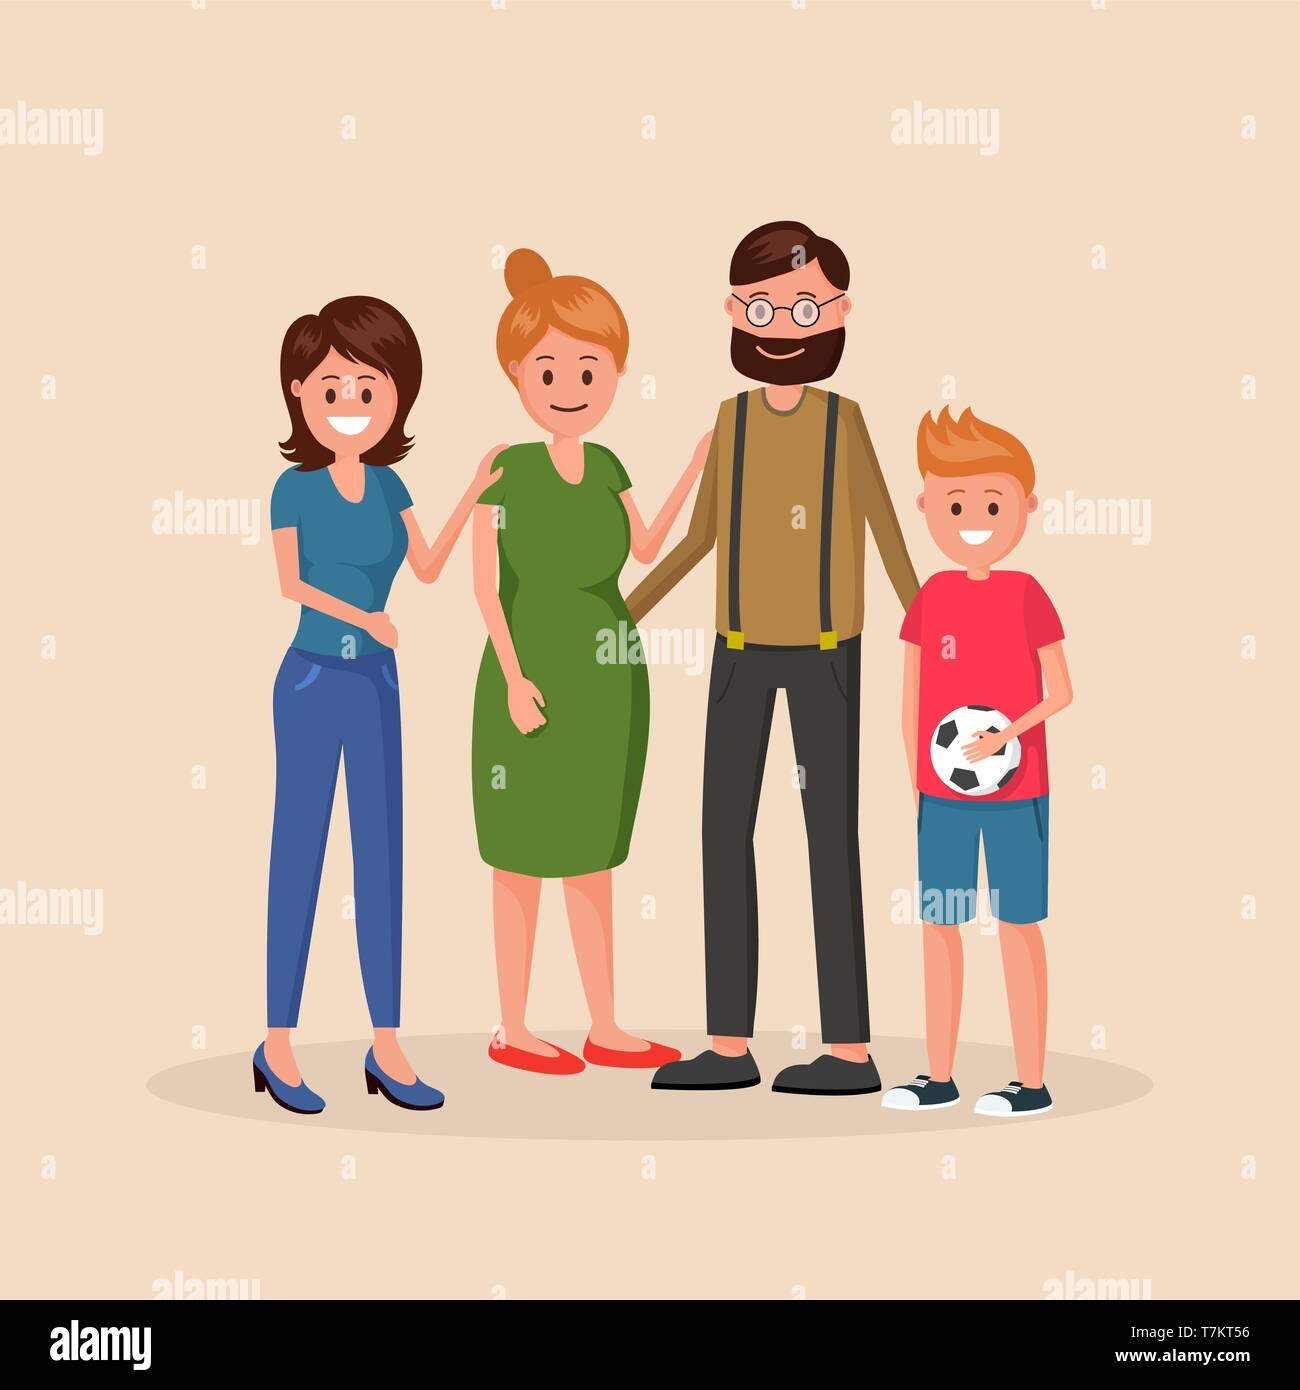 Mother and father standing with two children of different age younger boy and older girl vector illustration isolated on light background - Stock Vector